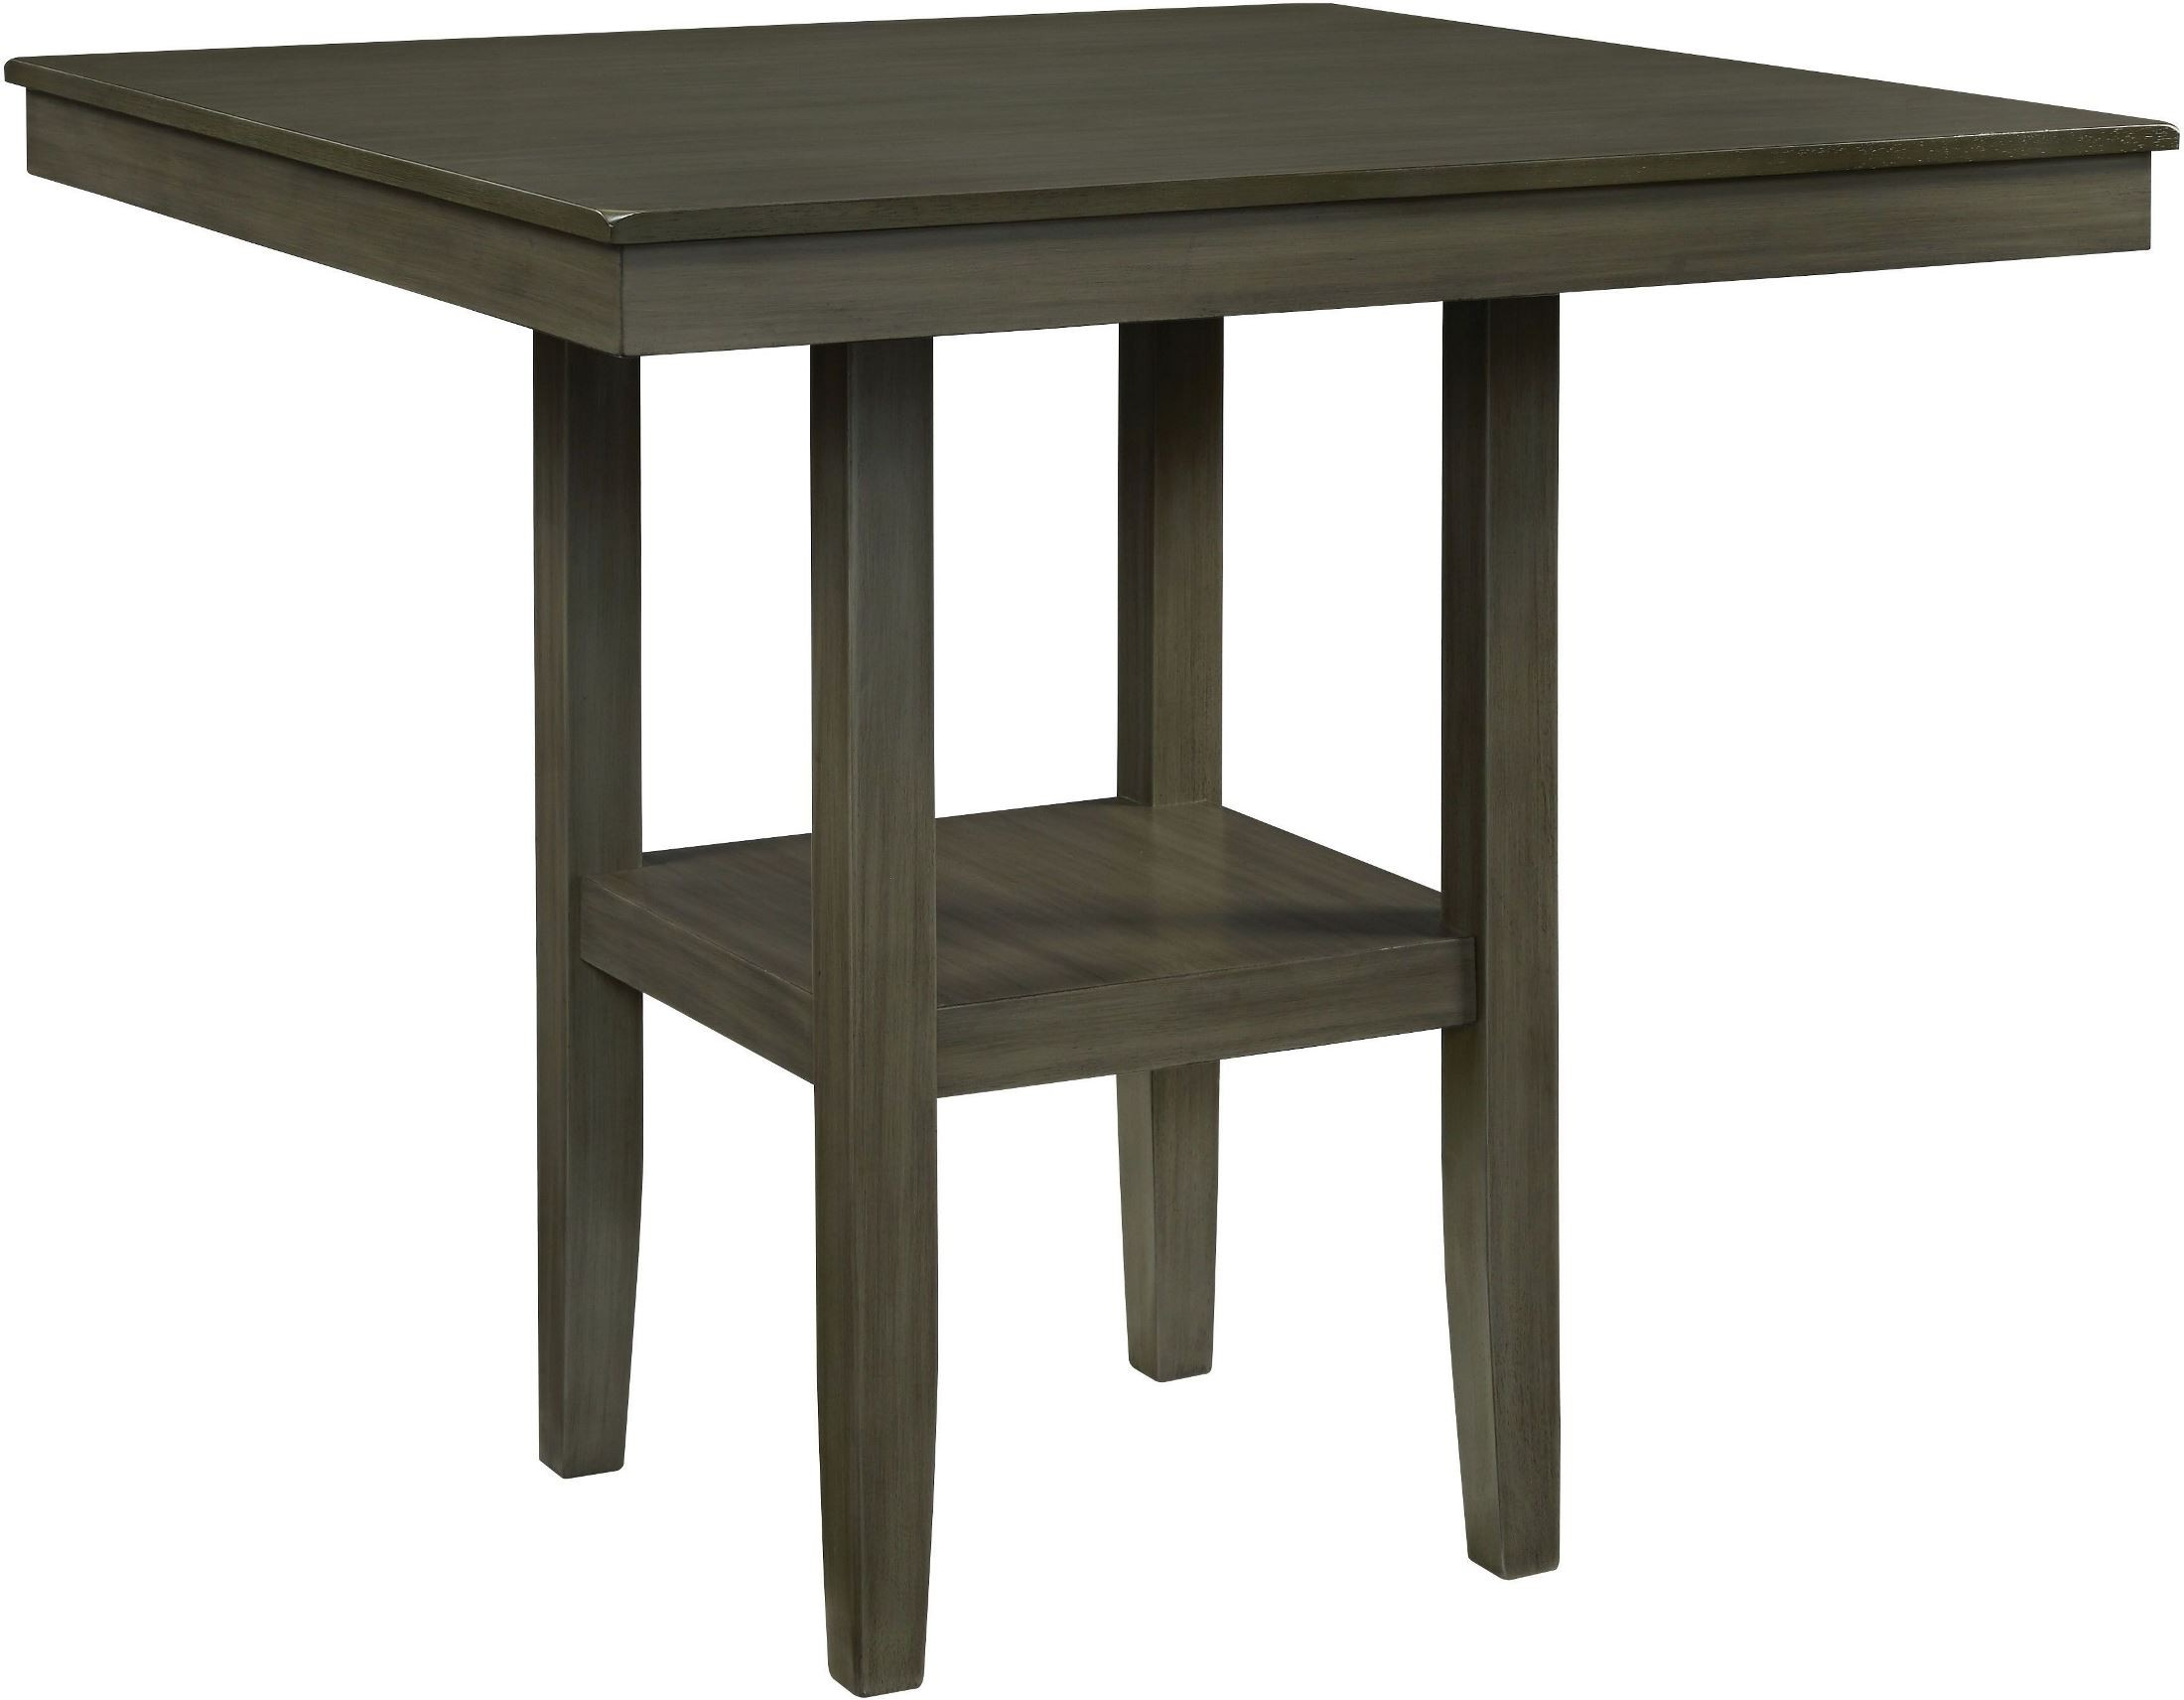 Loft Weathered Grey 5 Piece Counter Height Dining Room Set  : 13100loft13101tablesilo from colemanfurniture.com size 2200 x 1712 jpeg 203kB